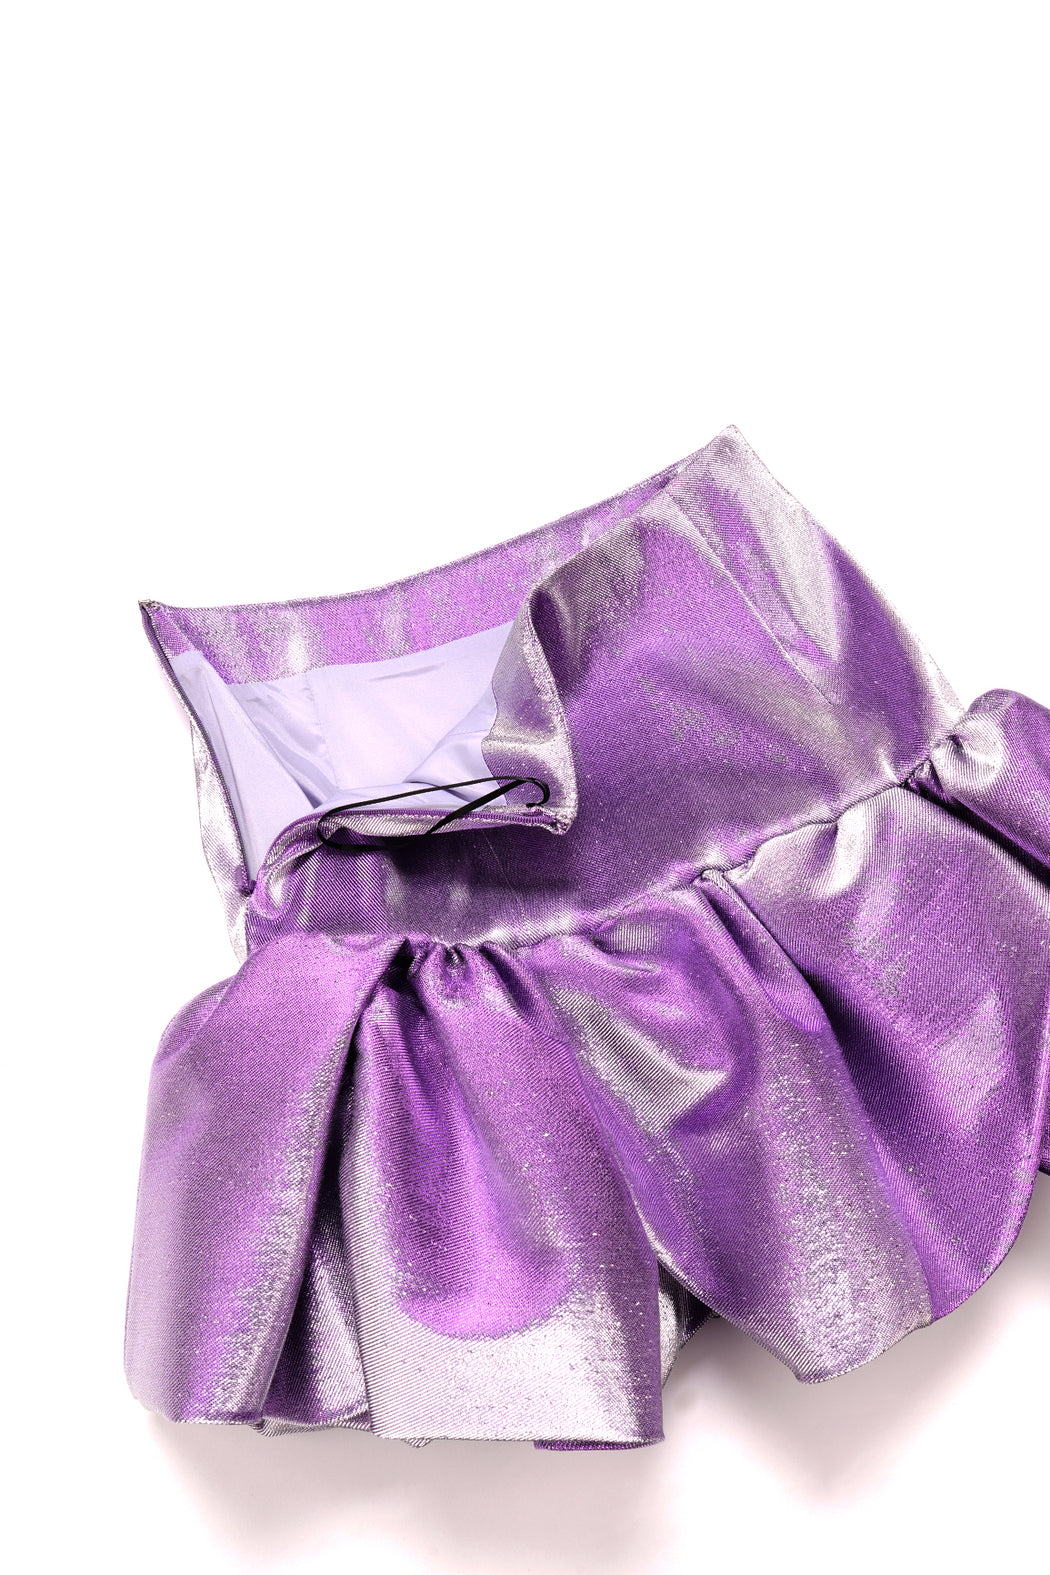 Bubble Hem Yoke Skirt - Lilac